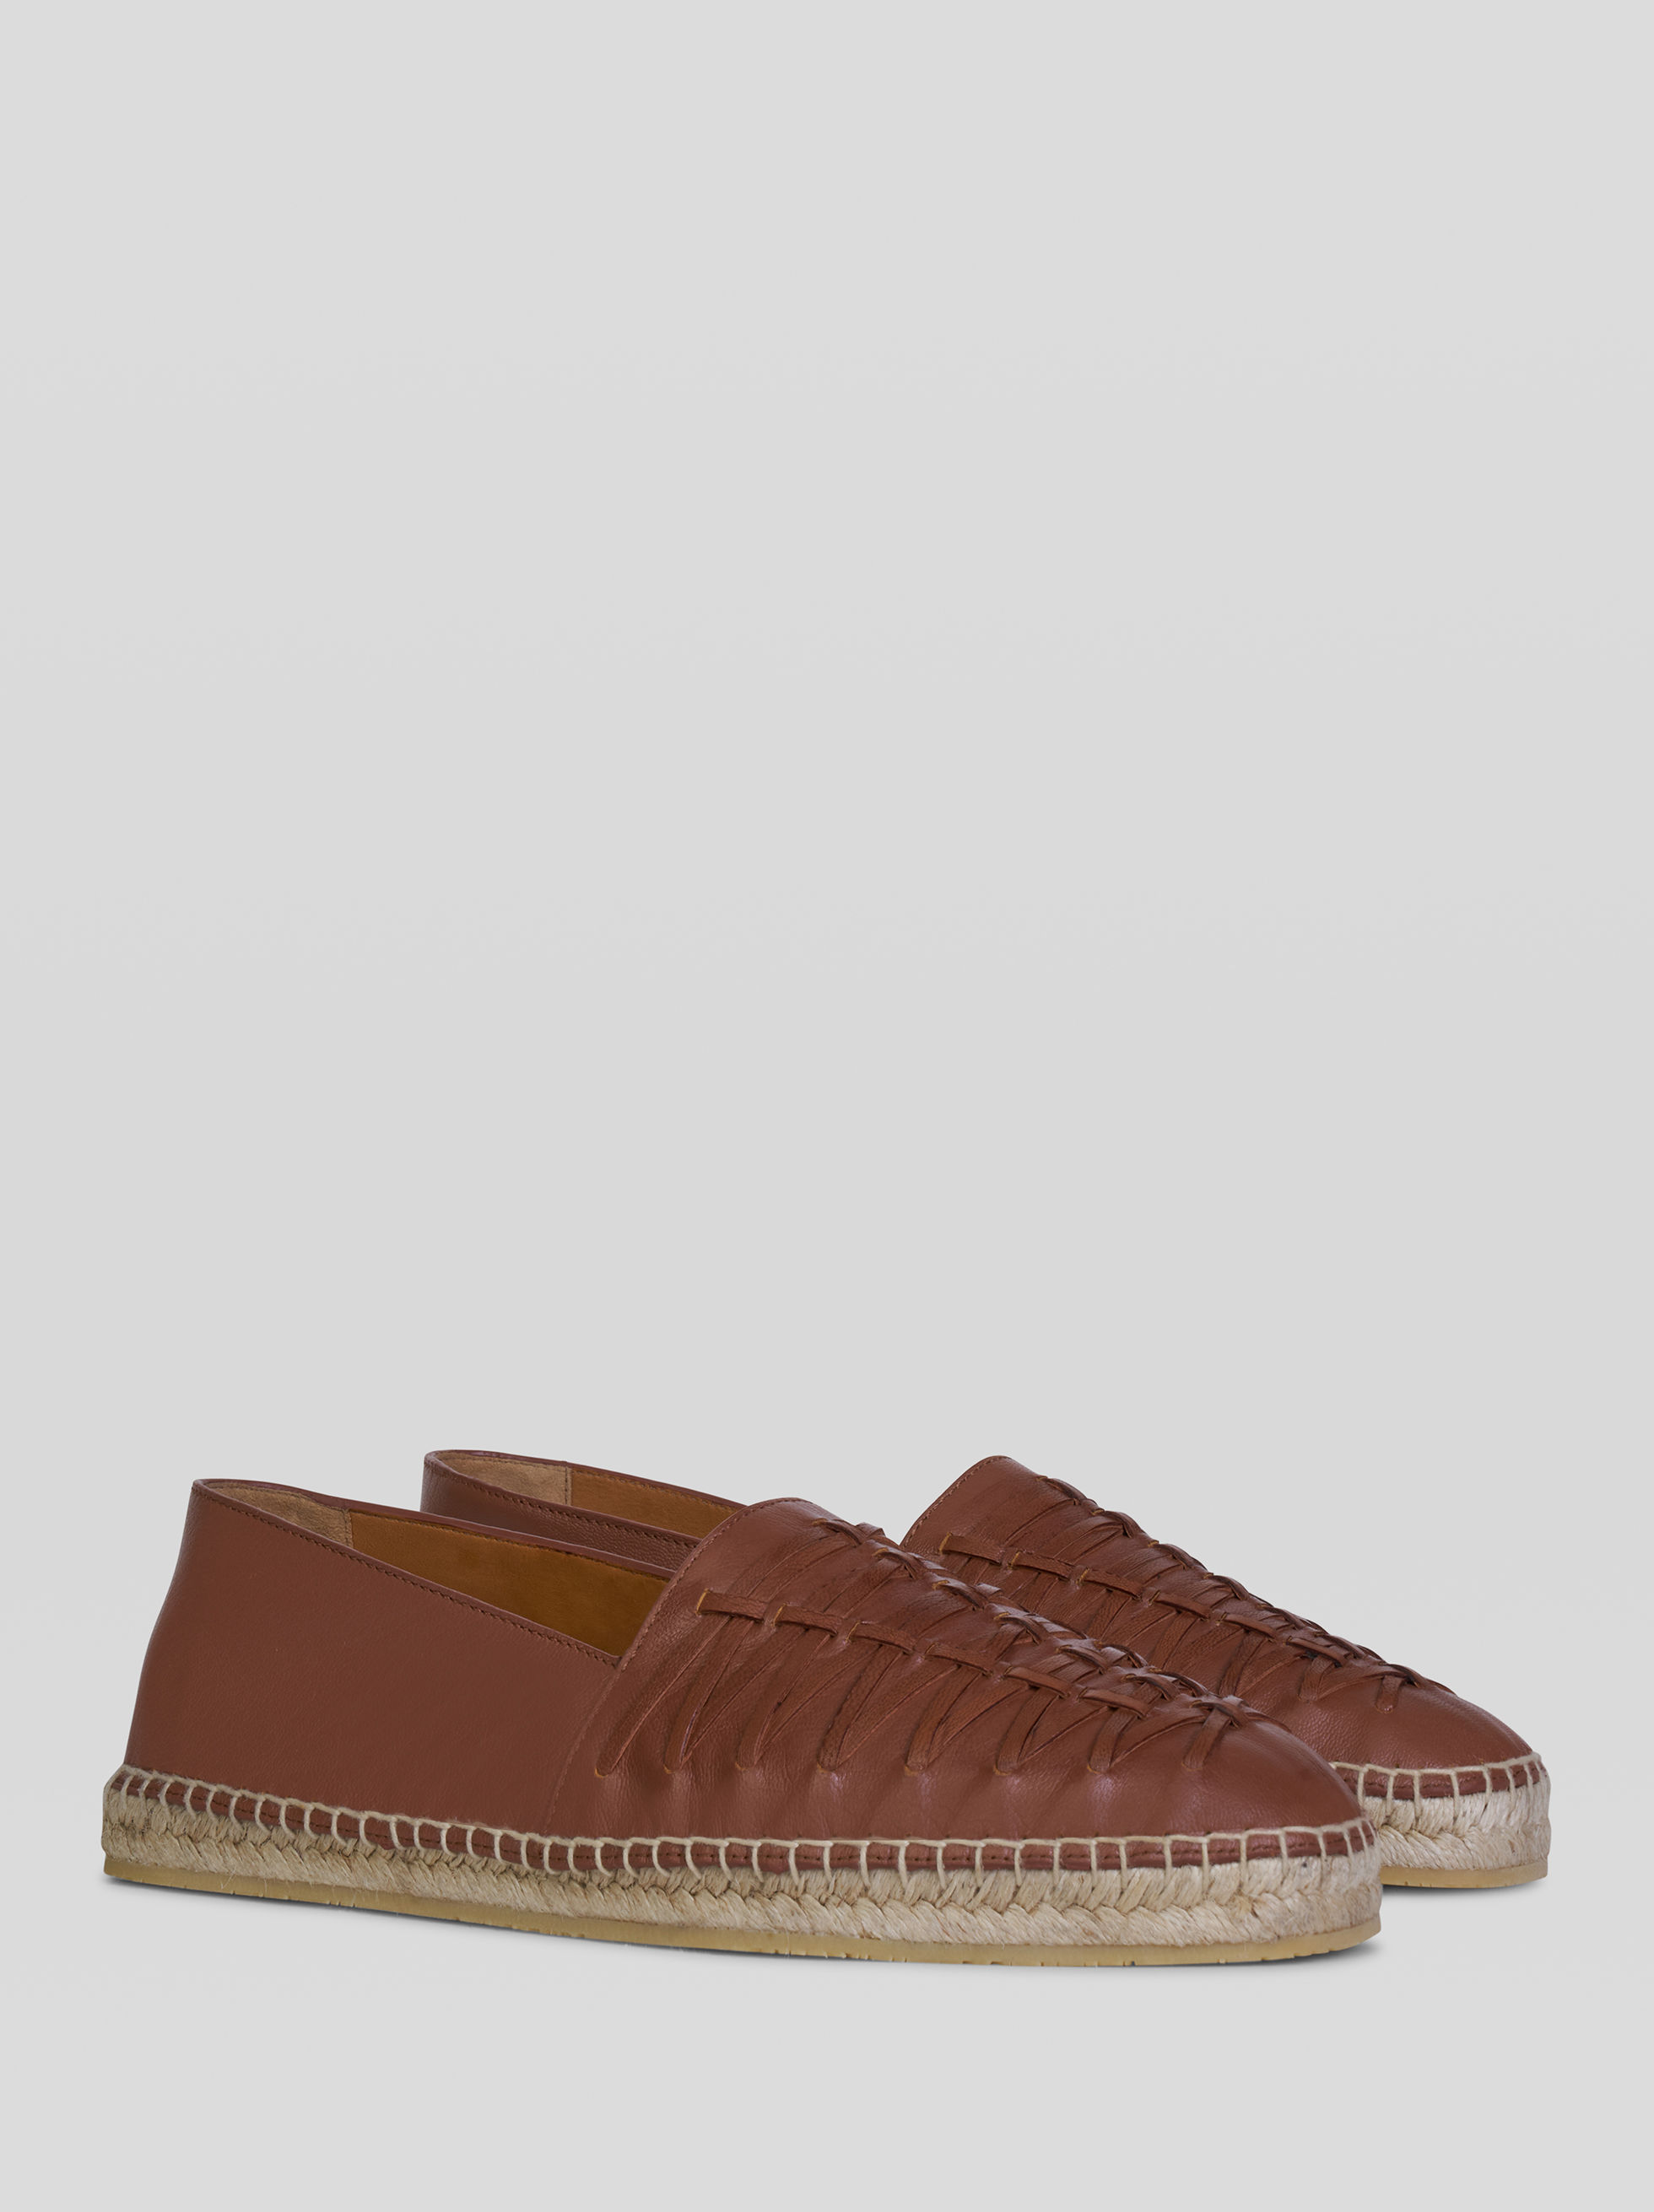 SUEDE ESPADRILLES WITH WEAVES